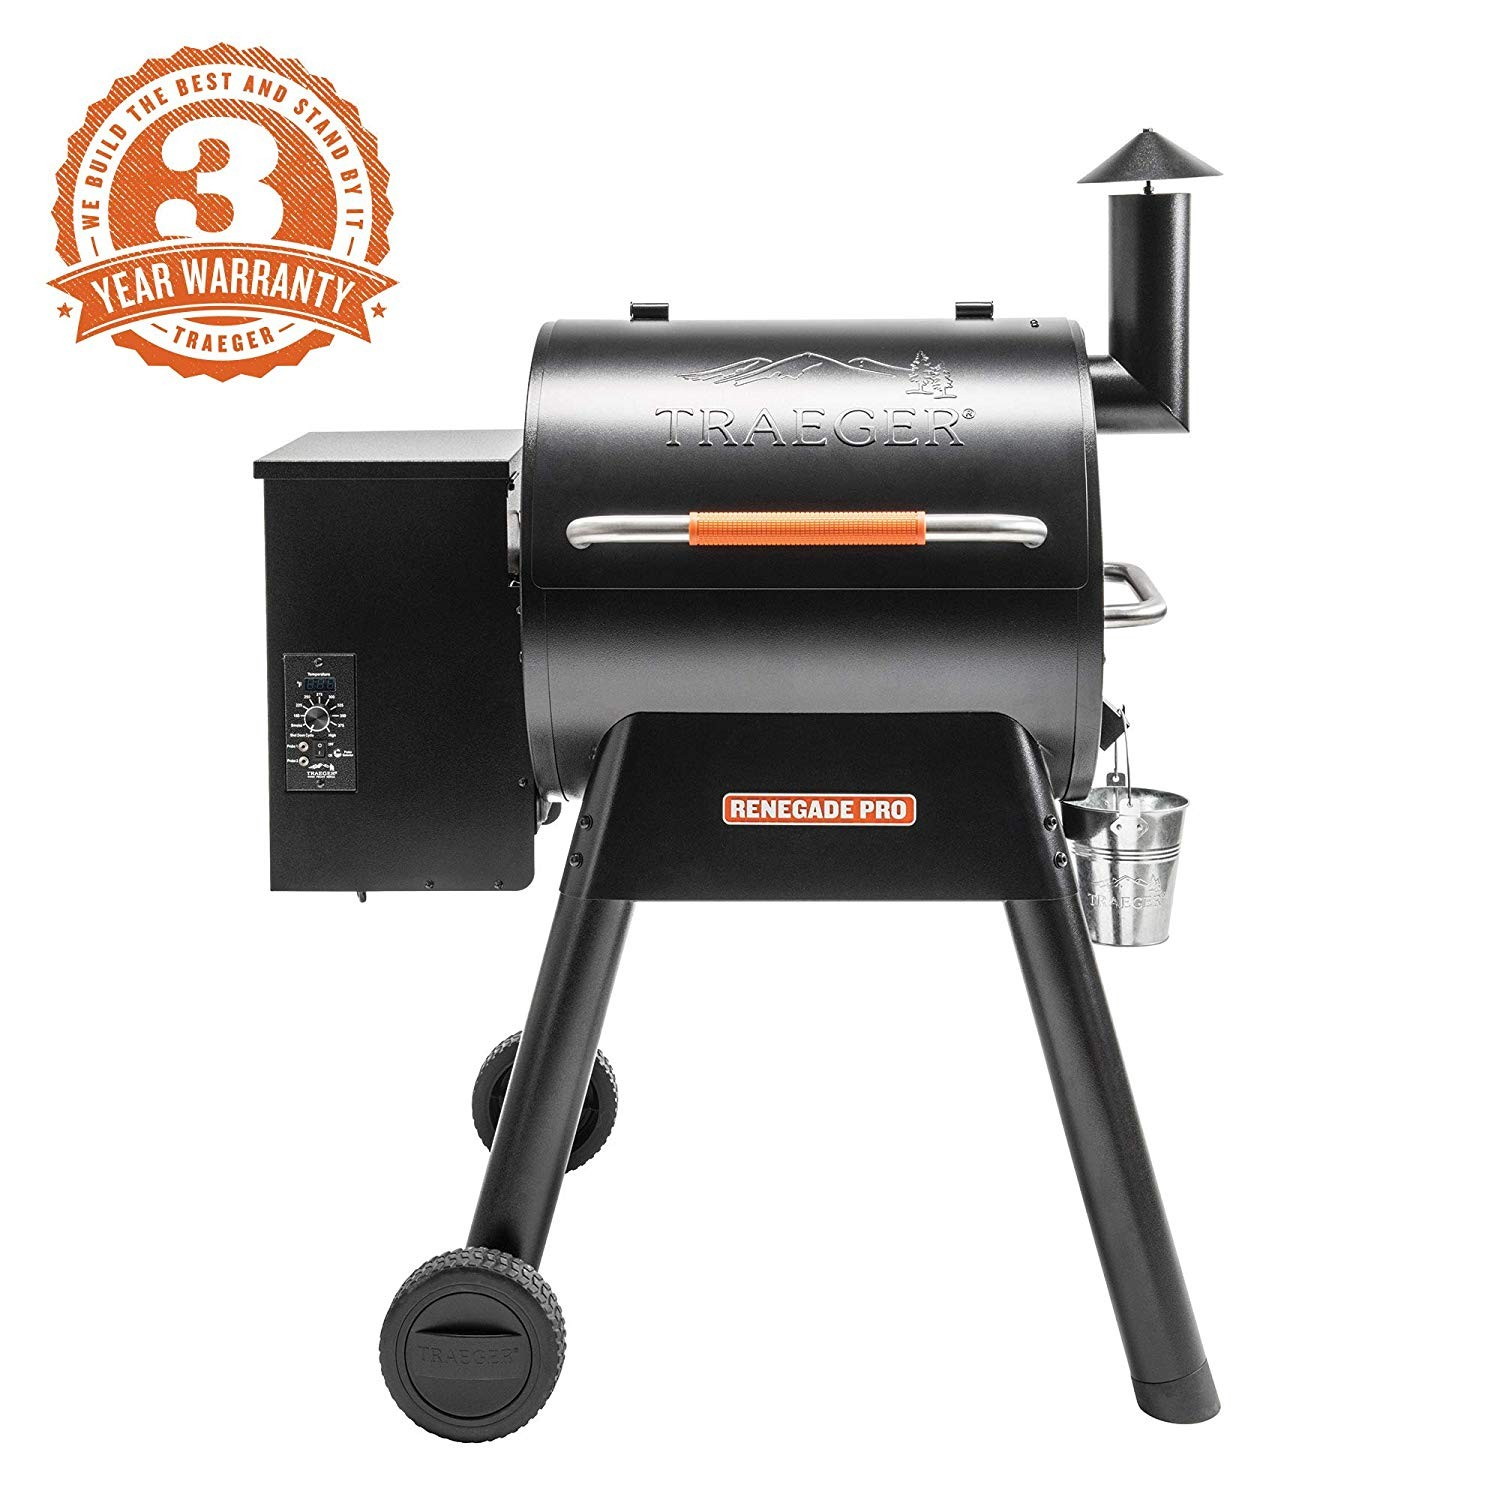 Amazon Traeger Grills TFB38TOD Renegade Pro Pellet Grill and Smoke 380 Sq in Cooking Capacity Black Orange Garden & Outdoor